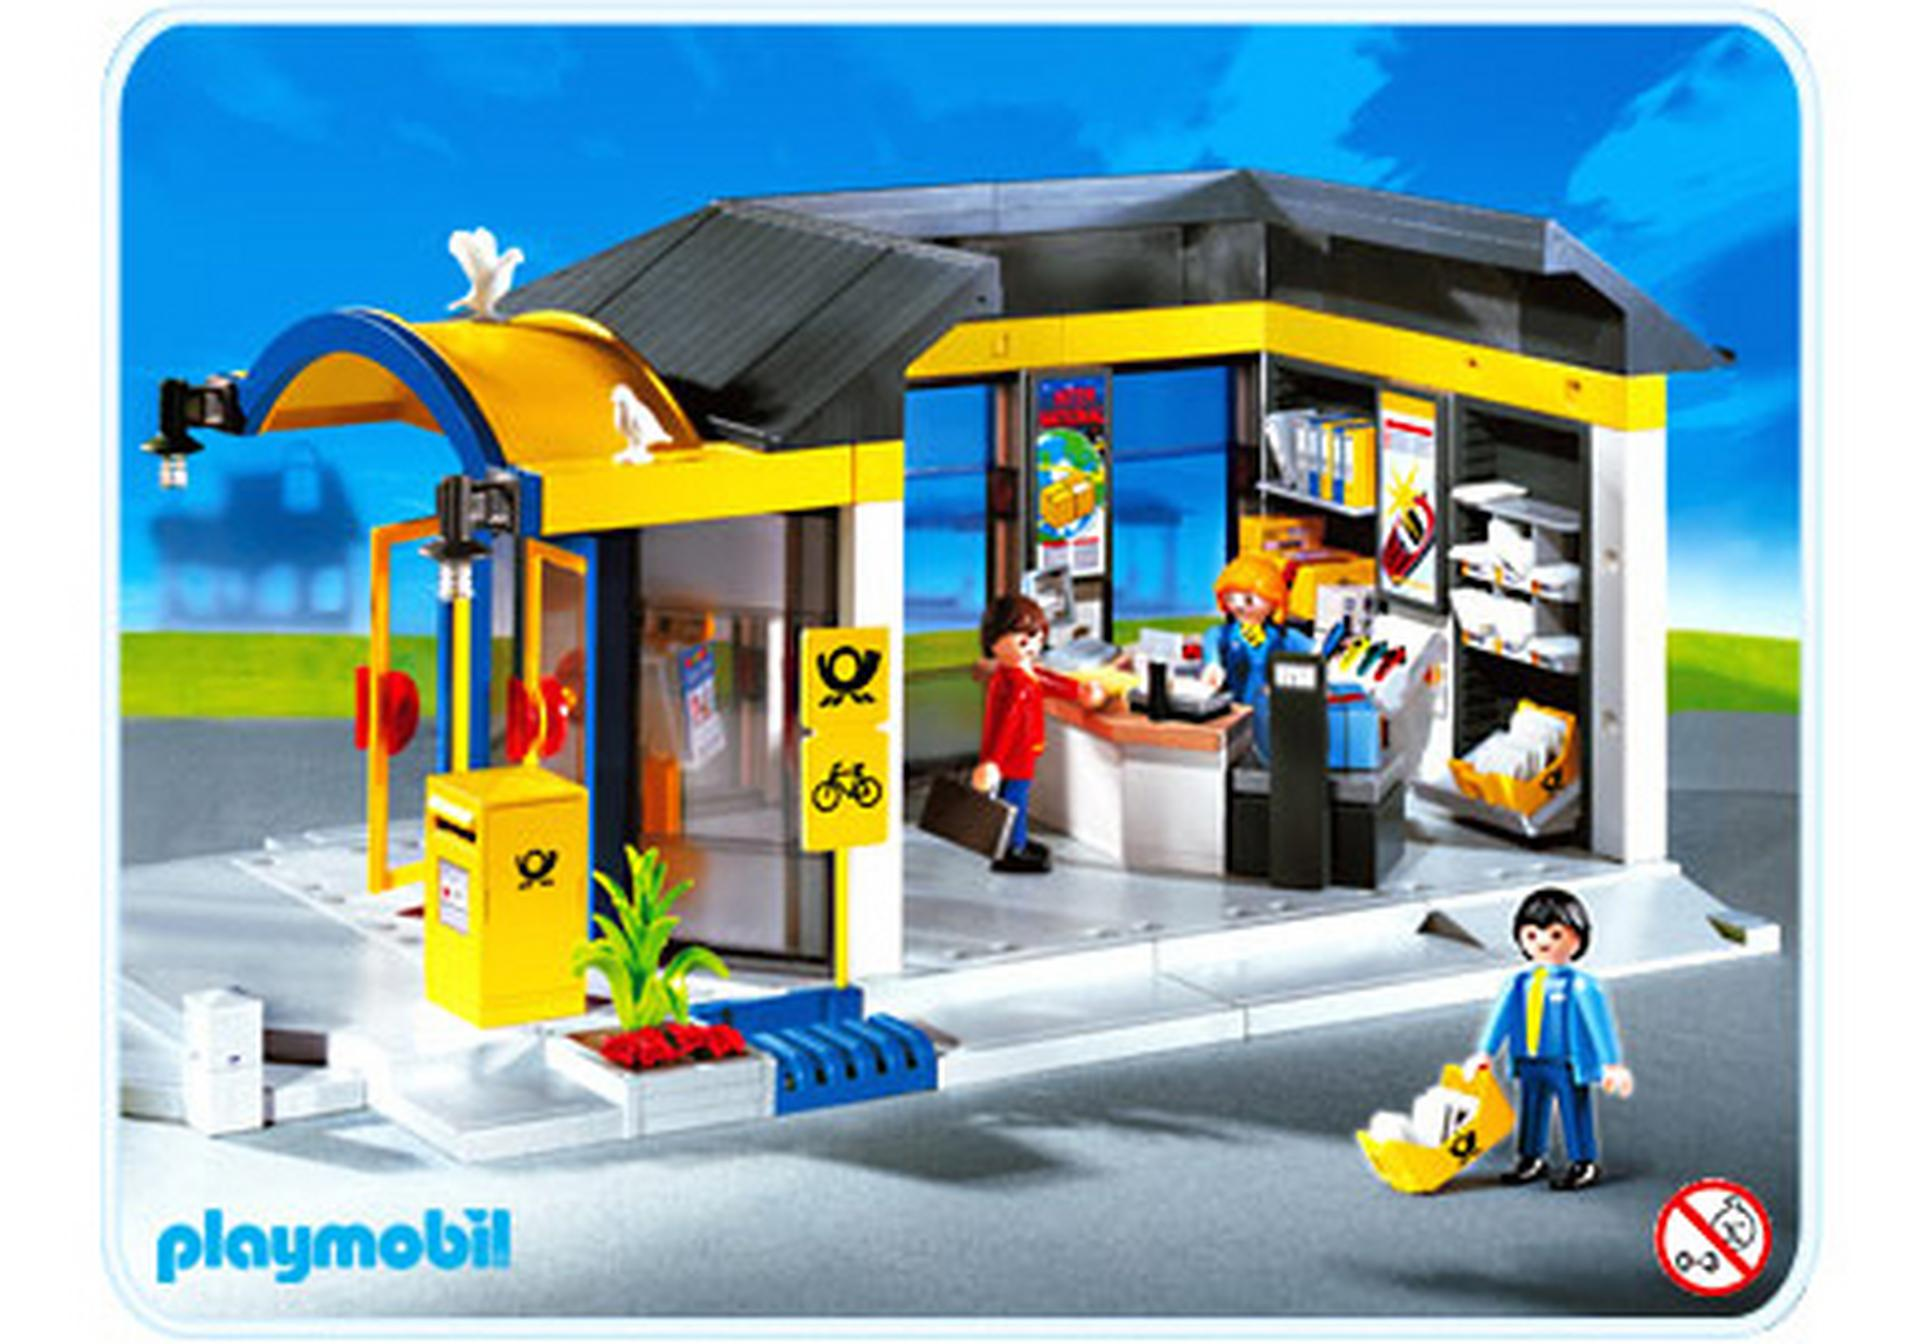 bureau de poste 4400 a playmobil france. Black Bedroom Furniture Sets. Home Design Ideas